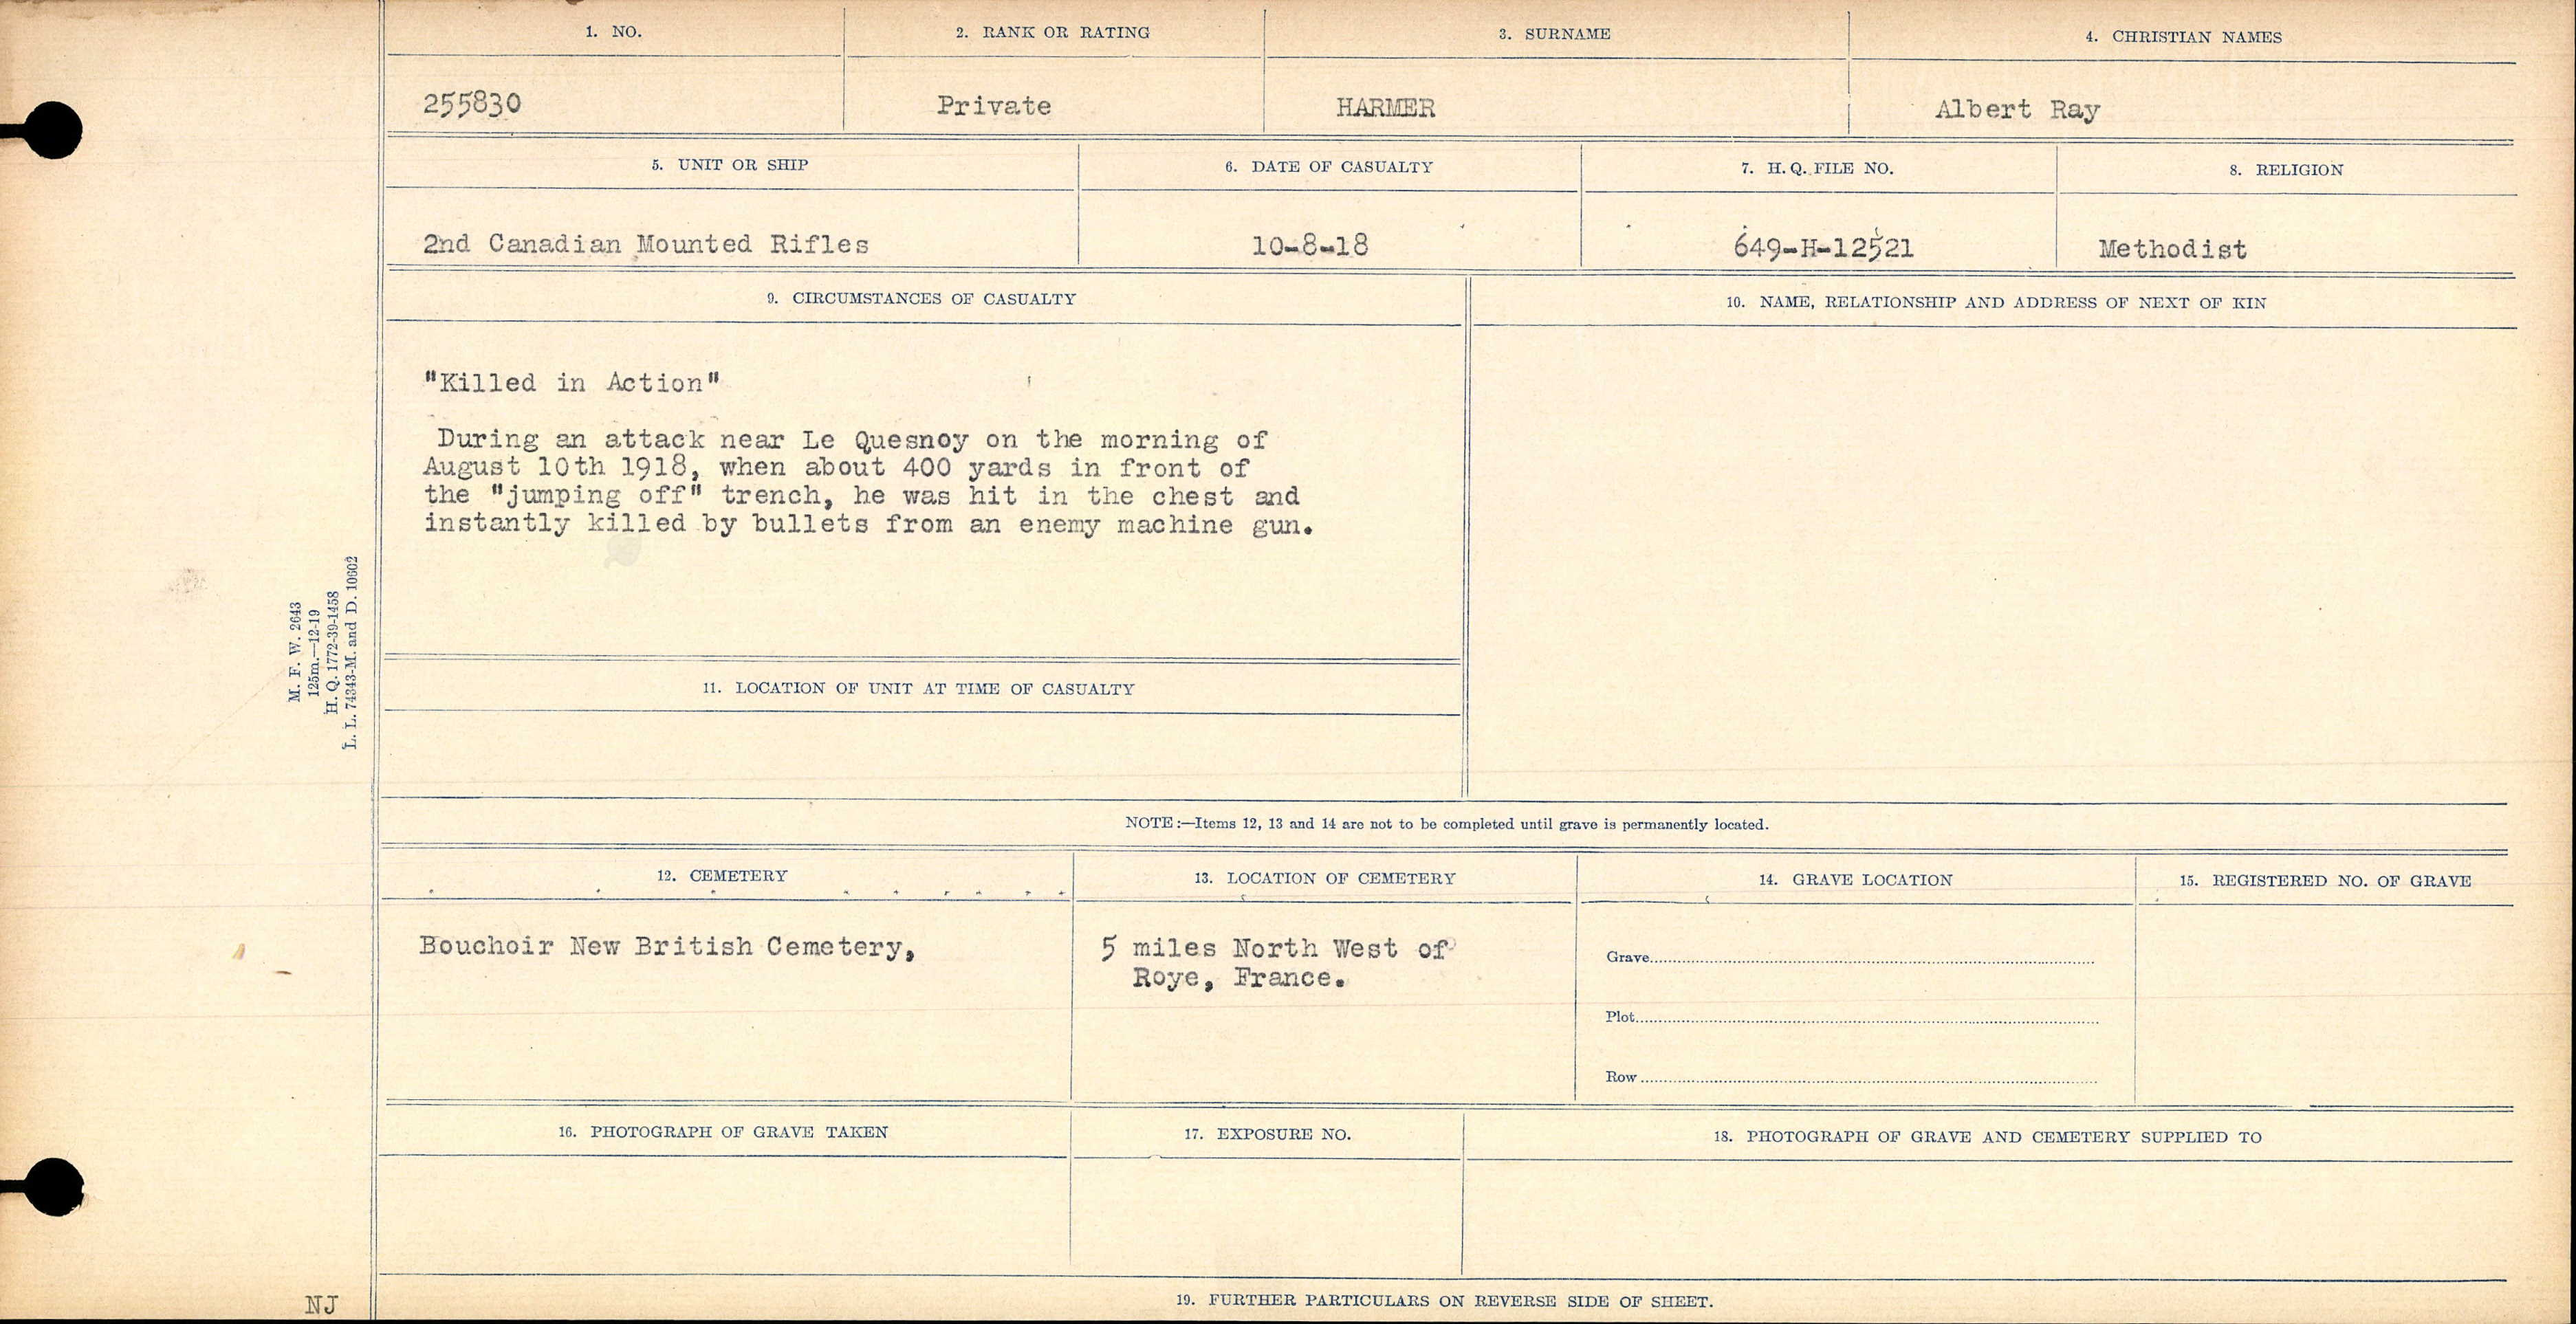 Circumstances of Death Registers – Canada, War Graves Registers (Circumstances of Casualty), 1914-1948 for Albert Ray Harmer Pg 1